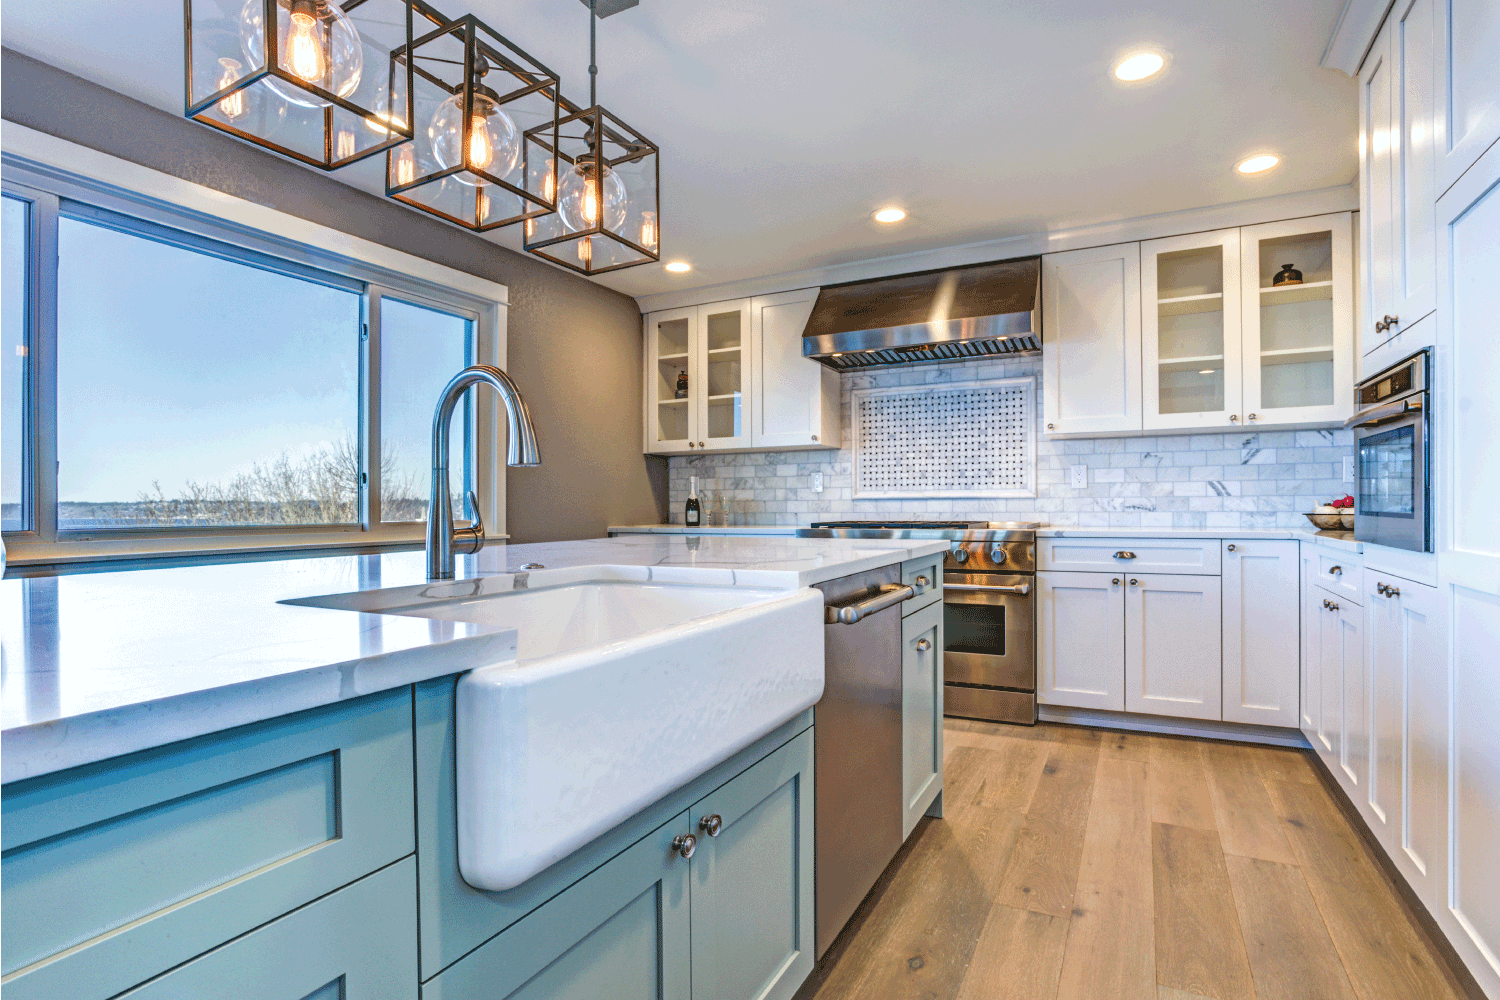 Beautiful kitchen room with green island and farm sink. White, Natural Wood, And The Color You Love